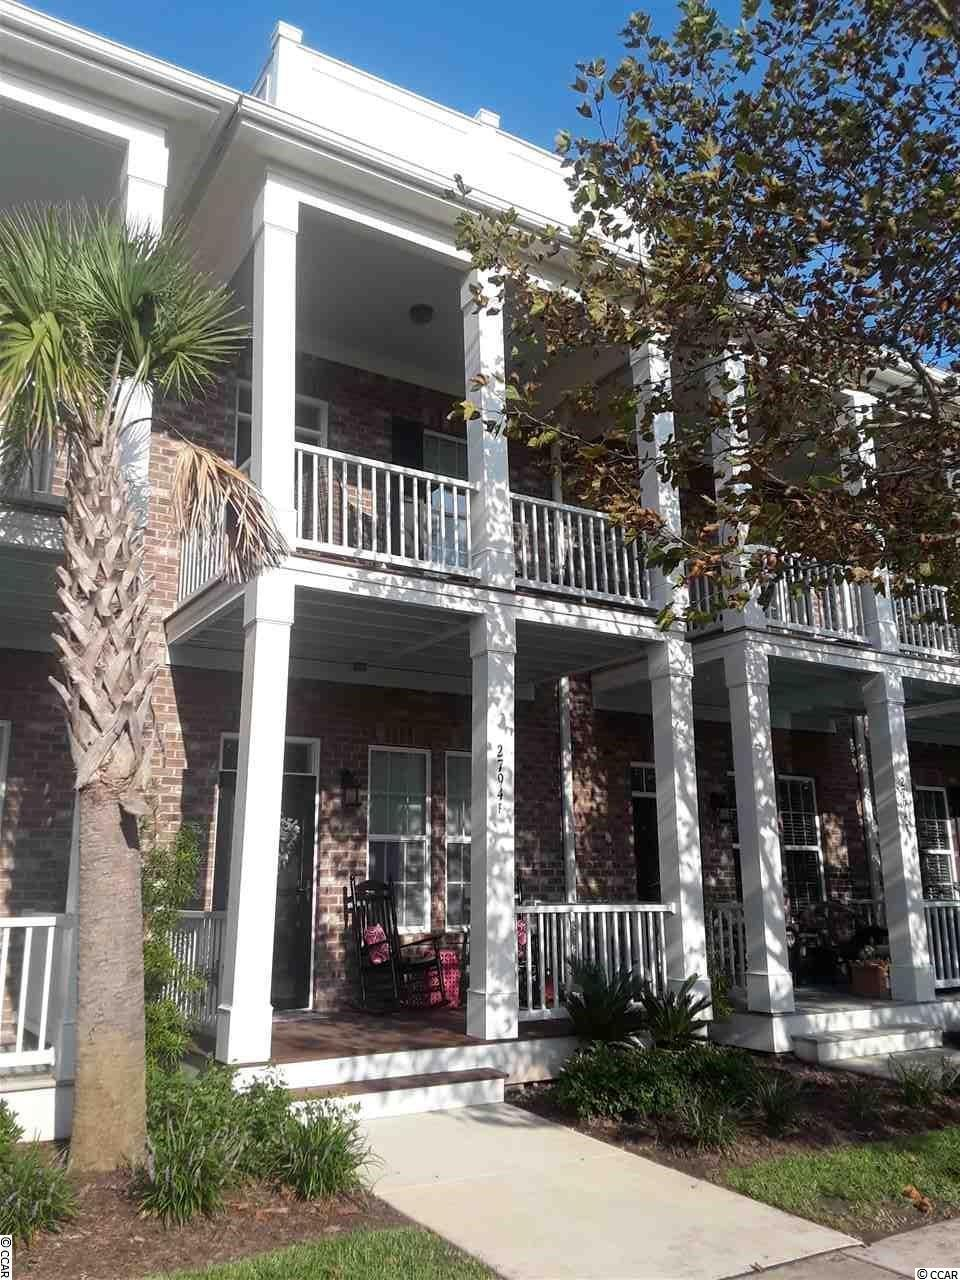 Here is the chance to own a beautiful townhome in the heart of the highly popular Market Common area of Myrtle Beach; which is a short walk, bike or golf cart ride to the great shopping, dining, parks and nightlife that highlights the neighborhood. This 2 bedroom, 2.5 bathtownhome with an attached garage is in a great location and barely a mile to the beach and 5 minute ride to the state park. This meticulously maintained unit has a plethora of upgrades not typically found in most townhomes; including hardwood flooring throughout the entire first floor. Both the master and the second bedroom feature an en suite bath with the master bath having a dual vanity and garden tub to go along with the separate shower and a nice size walk-in closet. This home is only 4 years old and has a sizable front porch to allow you to relax and enjoy the fabulous weather! And the large balcony off the master bedroom upstairs gives you a great view of the neighborhood. The pool, along with the lazy river, hot tubs and amenity center is less than a half mile away. Don't miss the chance to own your own personal oasis or great investment property in the best neighborhood in The Market Common! Exterior insurance, amenity center and landscaping are included in the low HOA fee. Call today to schedule your personal showing; you will beglad you did!  There is a tenant in place with a lease through the end of October, but they may be willing to terminate the lease early if desired.  For investors, they would also like to extend their lease to go month to month once it expires.